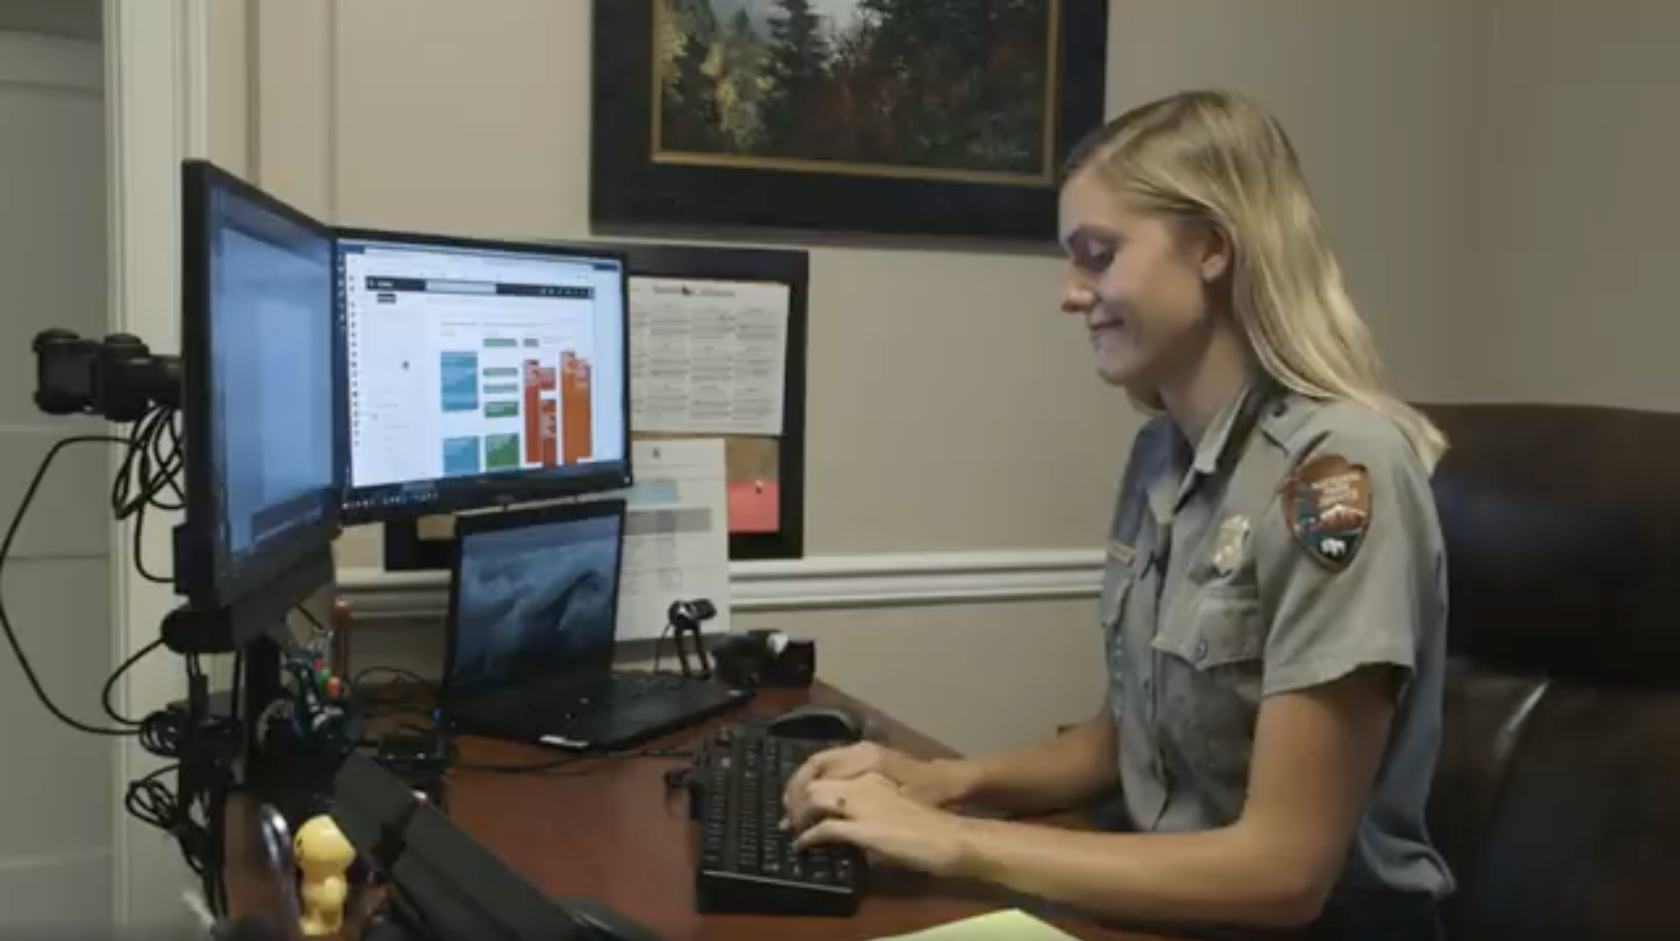 Jessie Snow, in NPS uniform, works at a computer